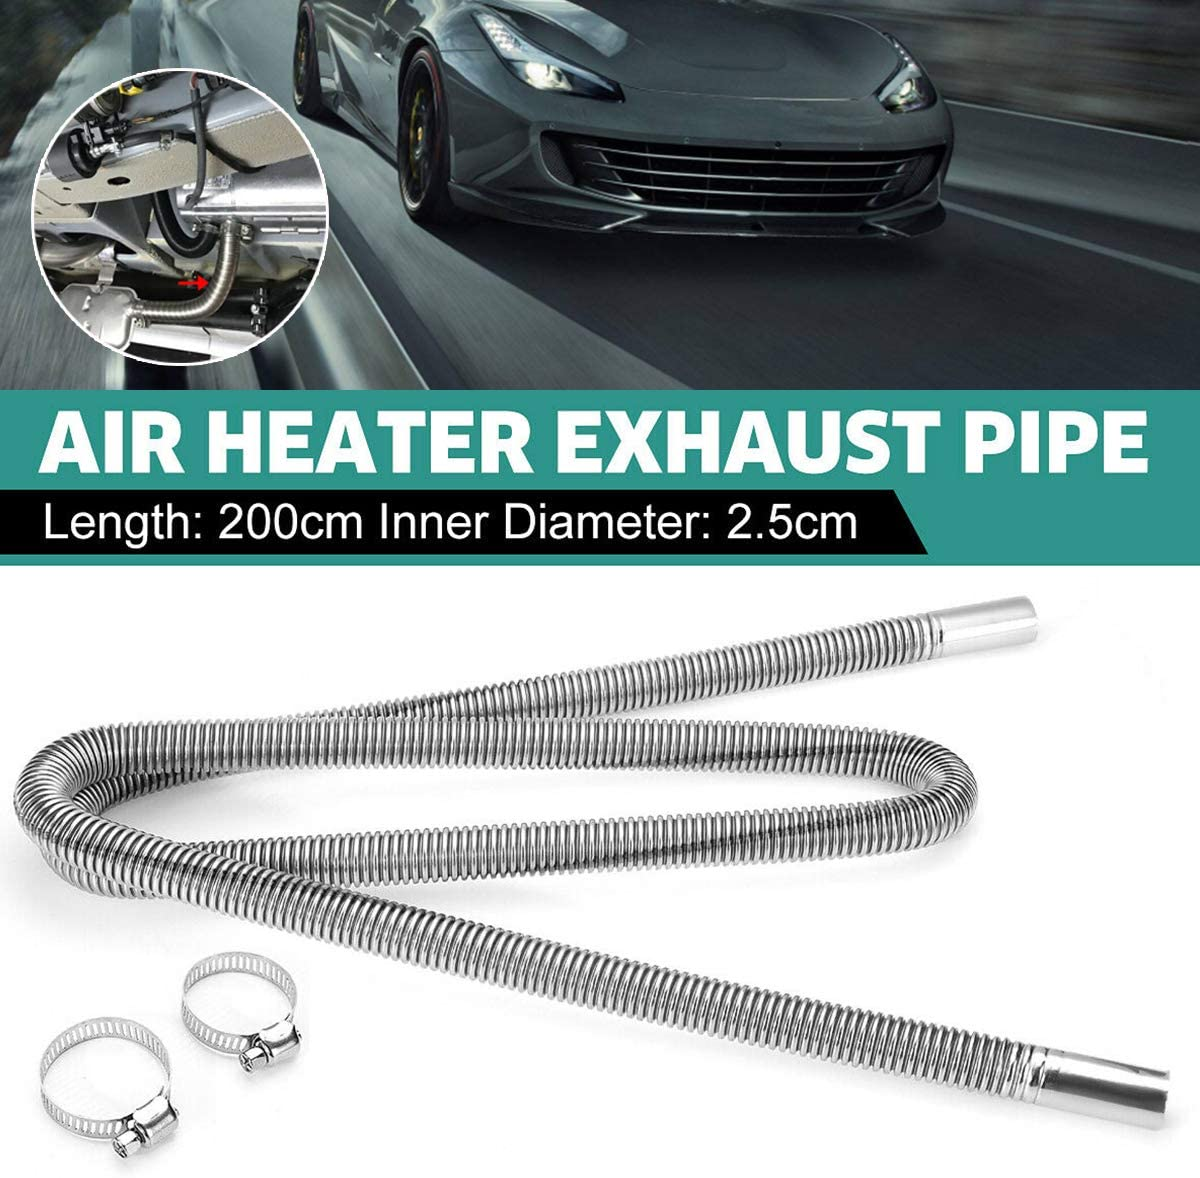 1 inch Stainless Steel Exhaust Pipe Parking Air Heater Fuel Tank Diesel Gas Vent Hose